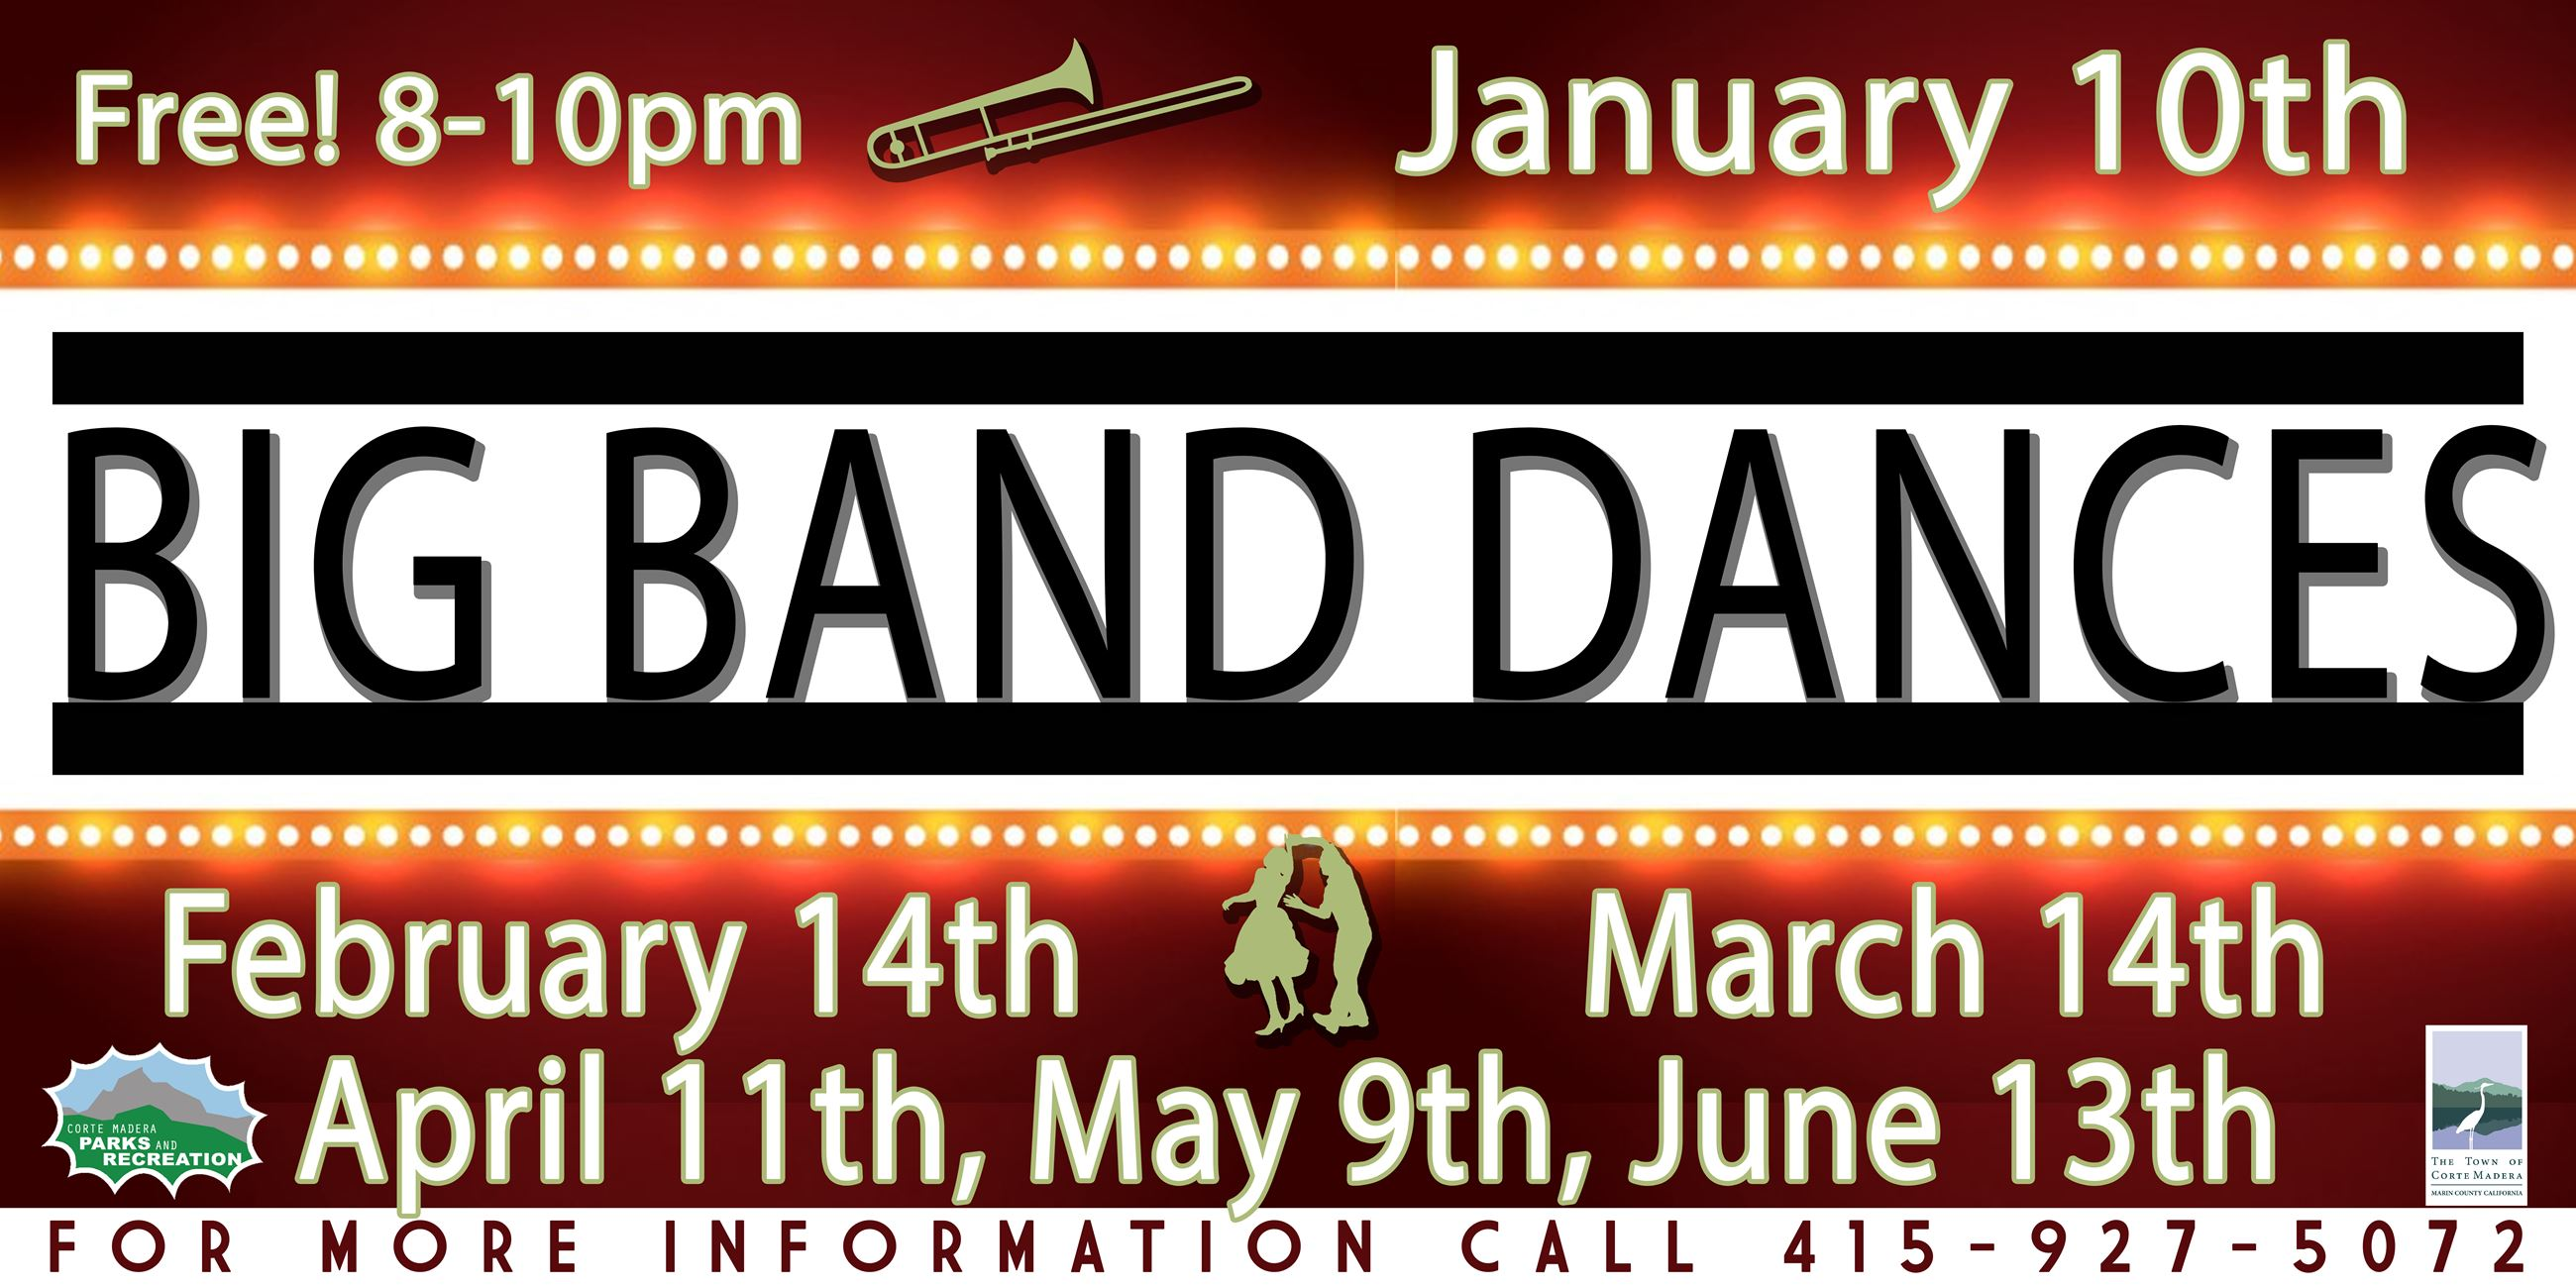 Big Band Dances